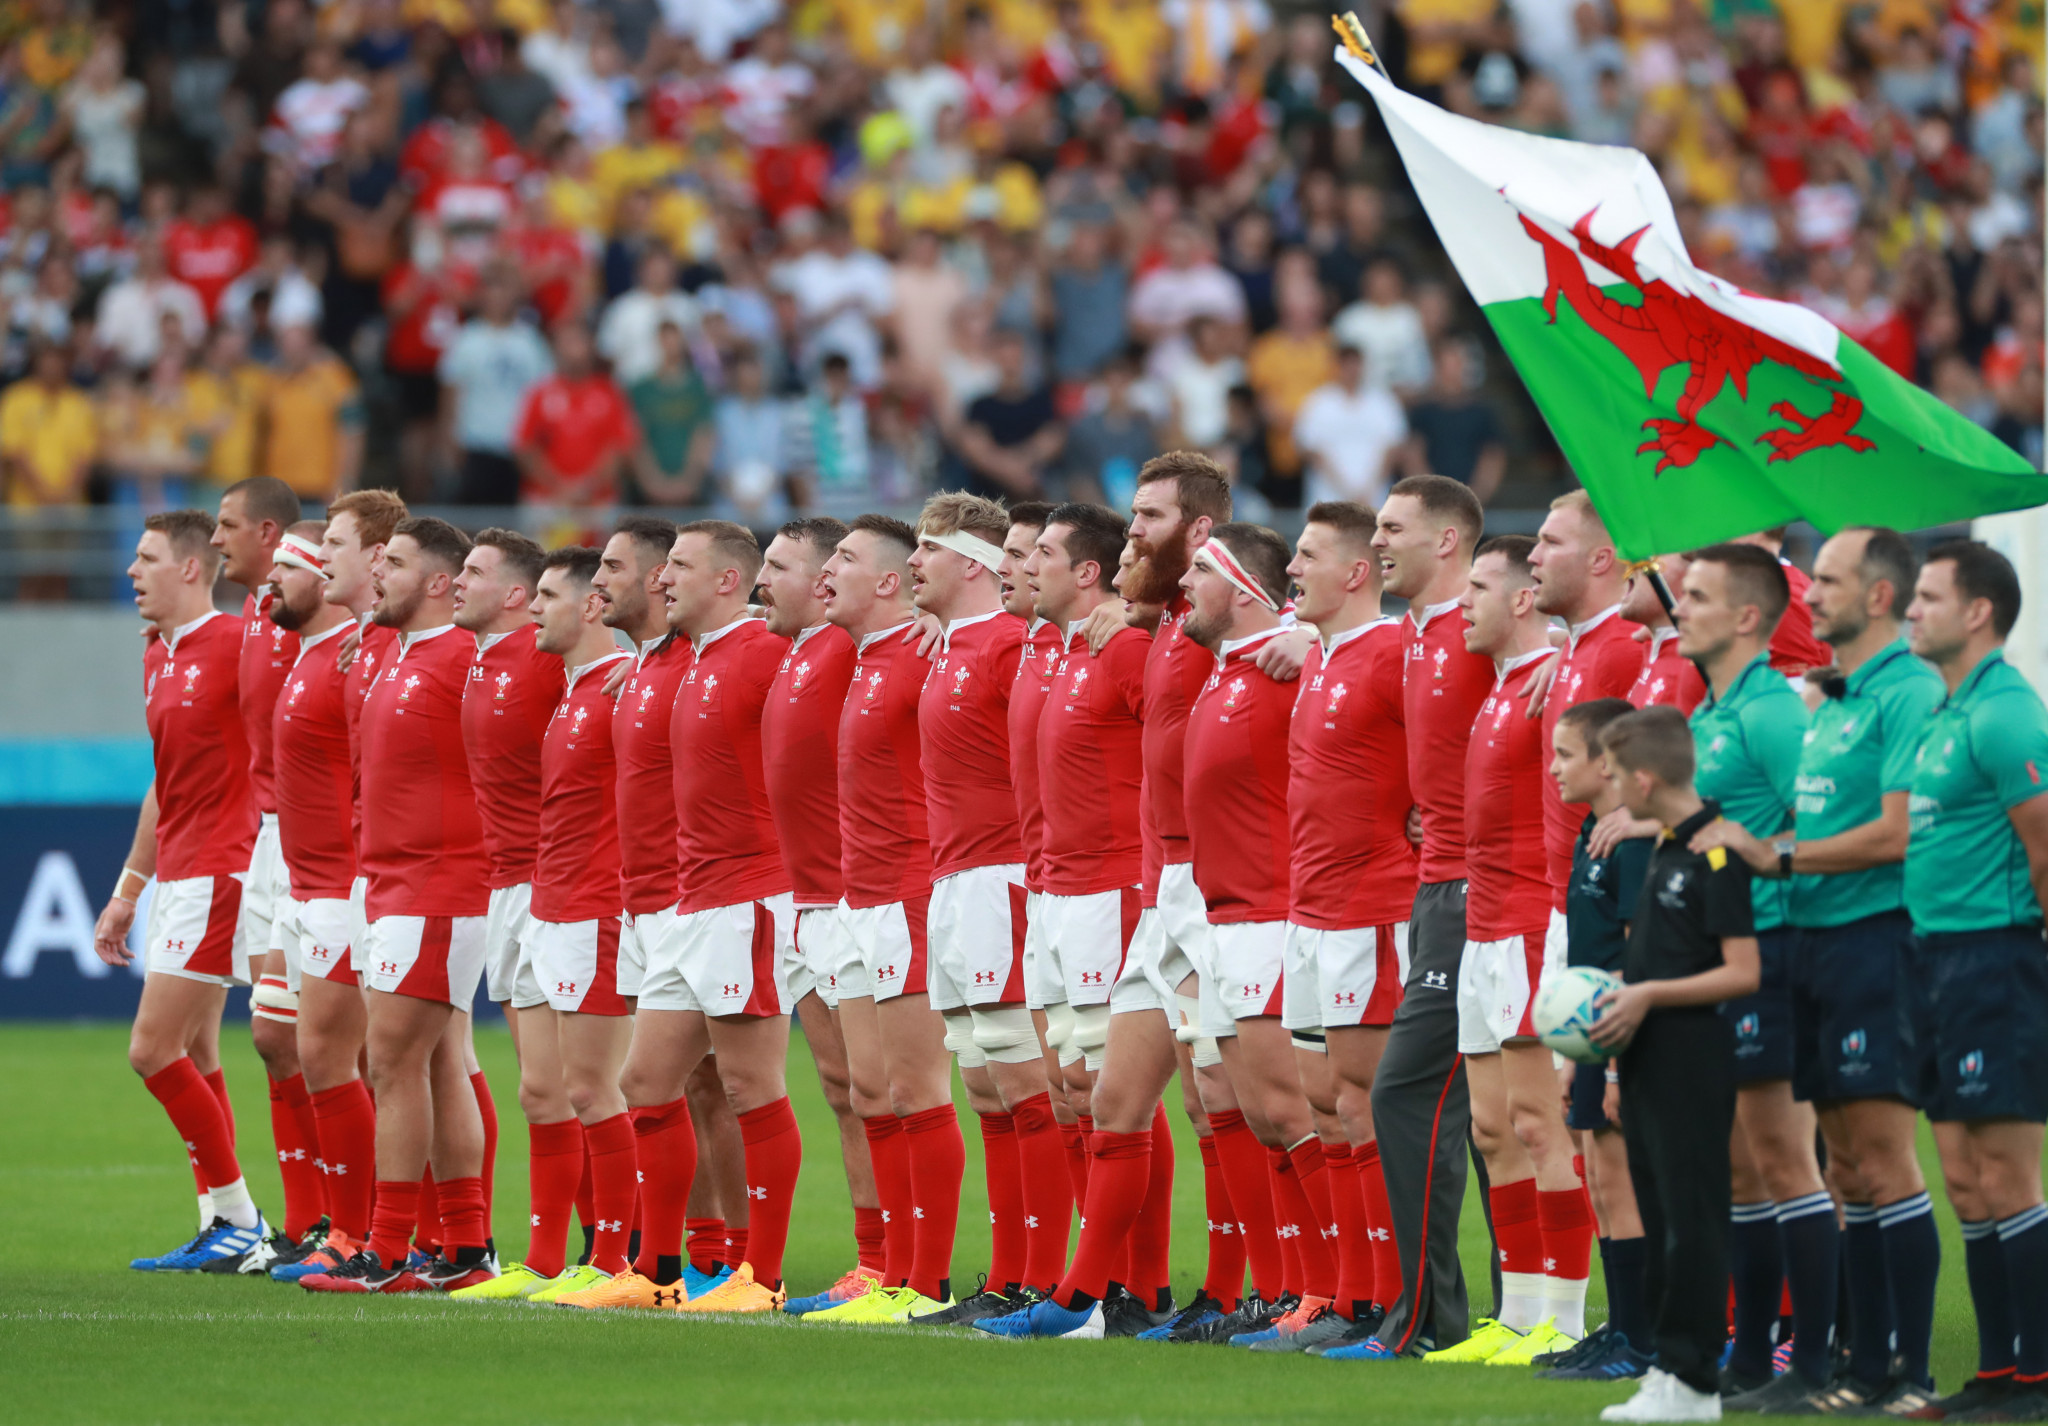 Wales seal memorable Rugby World Cup win over Australia